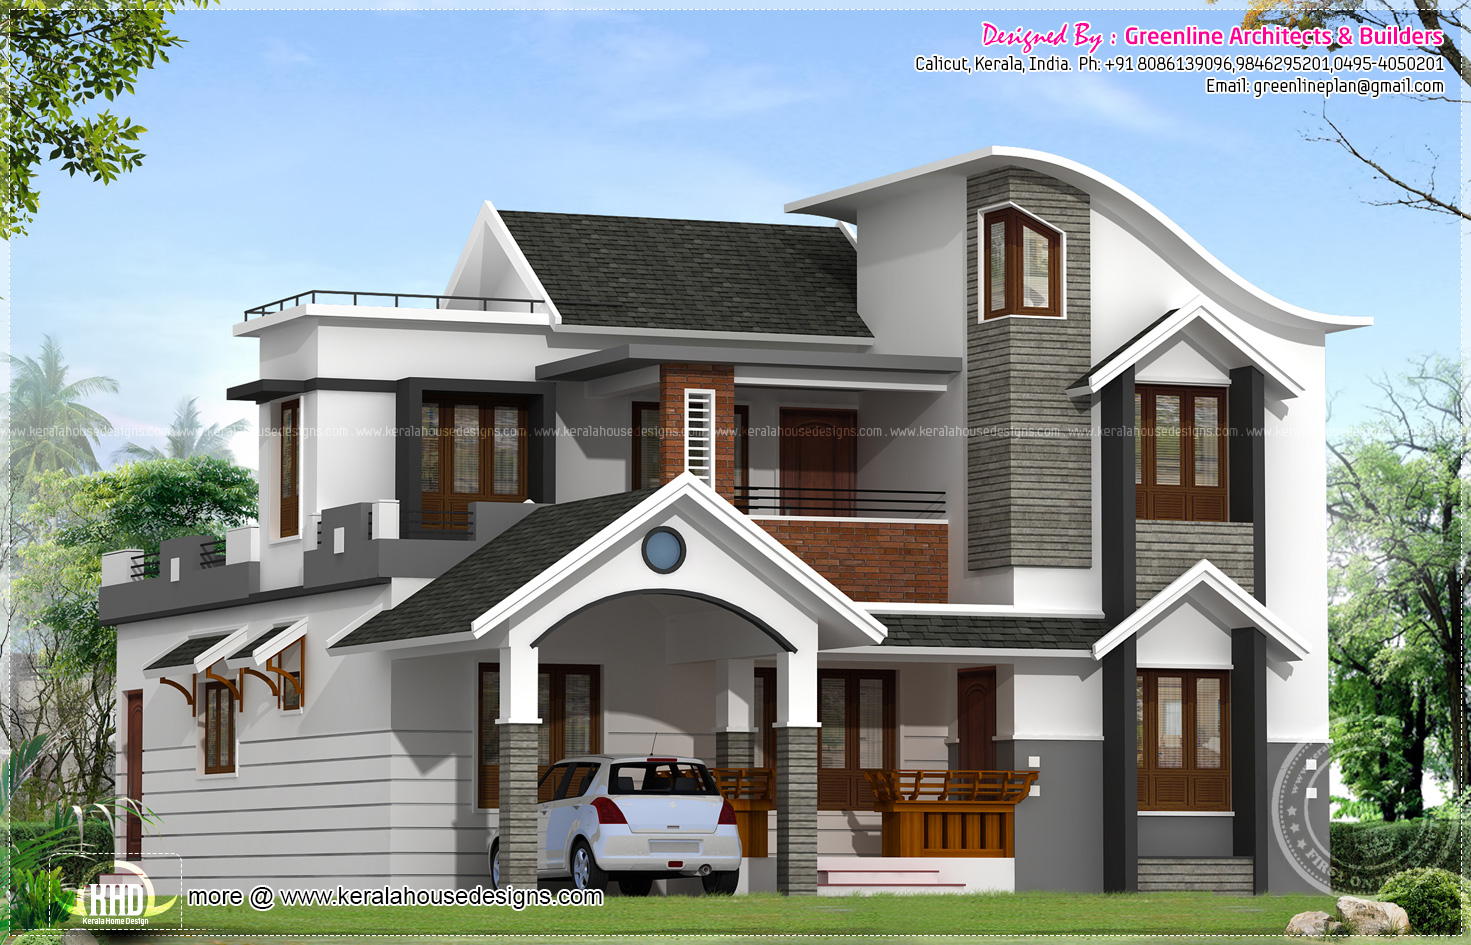 May 2013 kerala home design and floor plans for Kerala houses designs